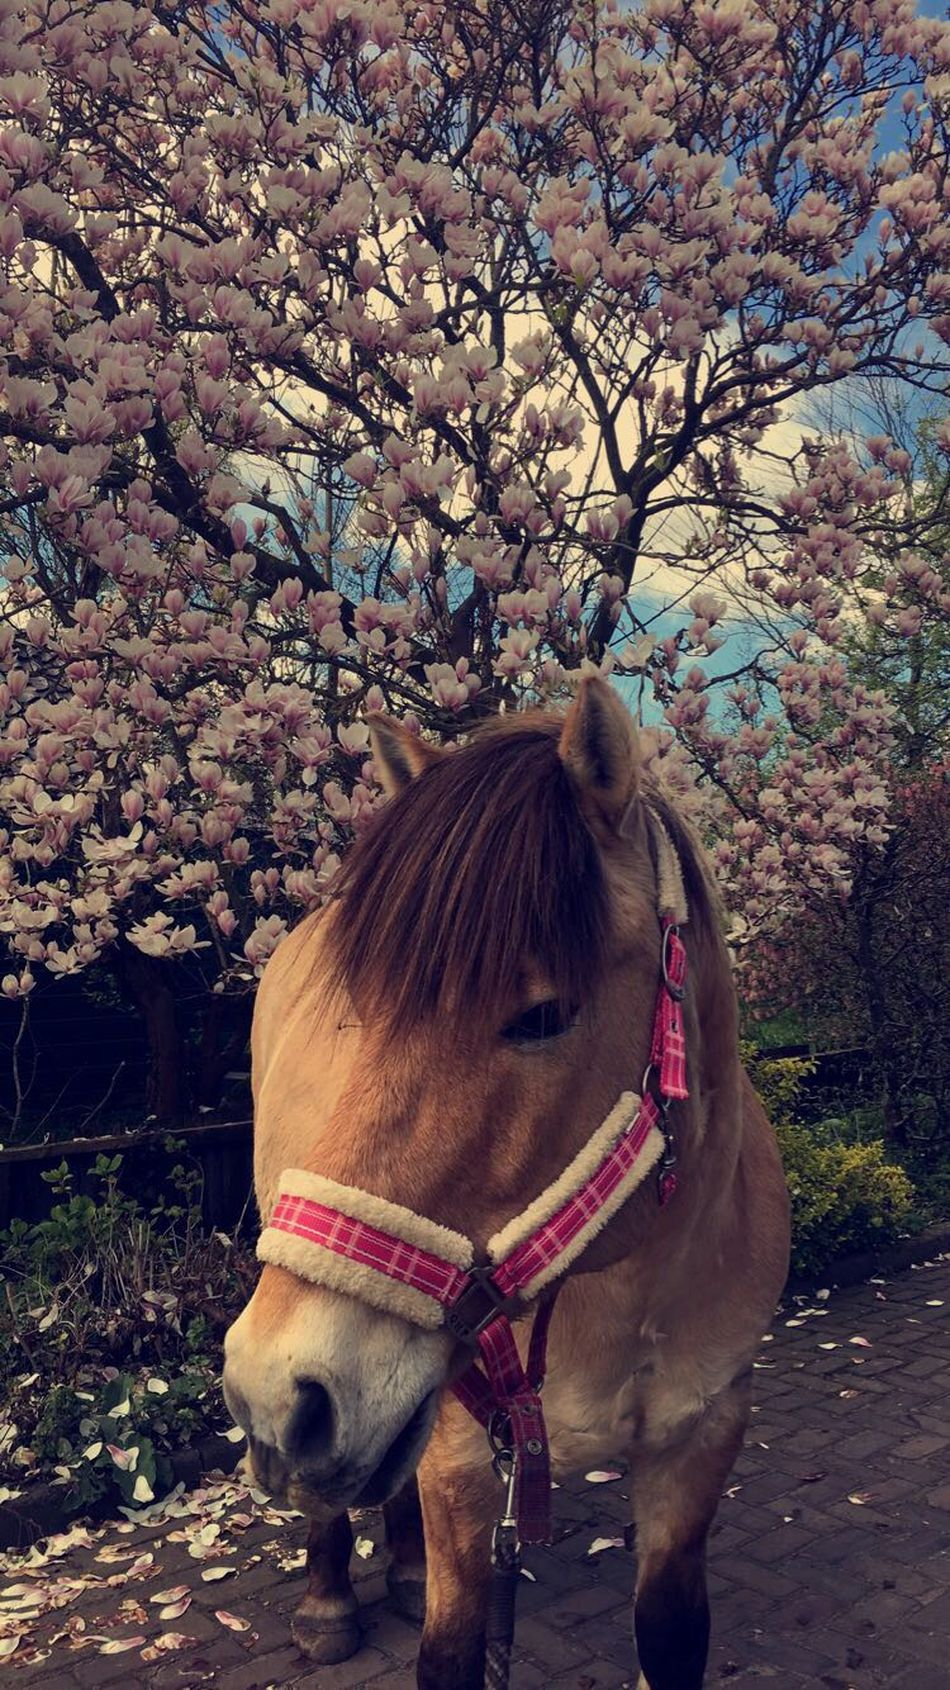 Horse Domestic Animals Animal Themes Mammal One Animal Working Animal Nature Tree Livestock Day Close-up Outdoors Beauty In Nature No People